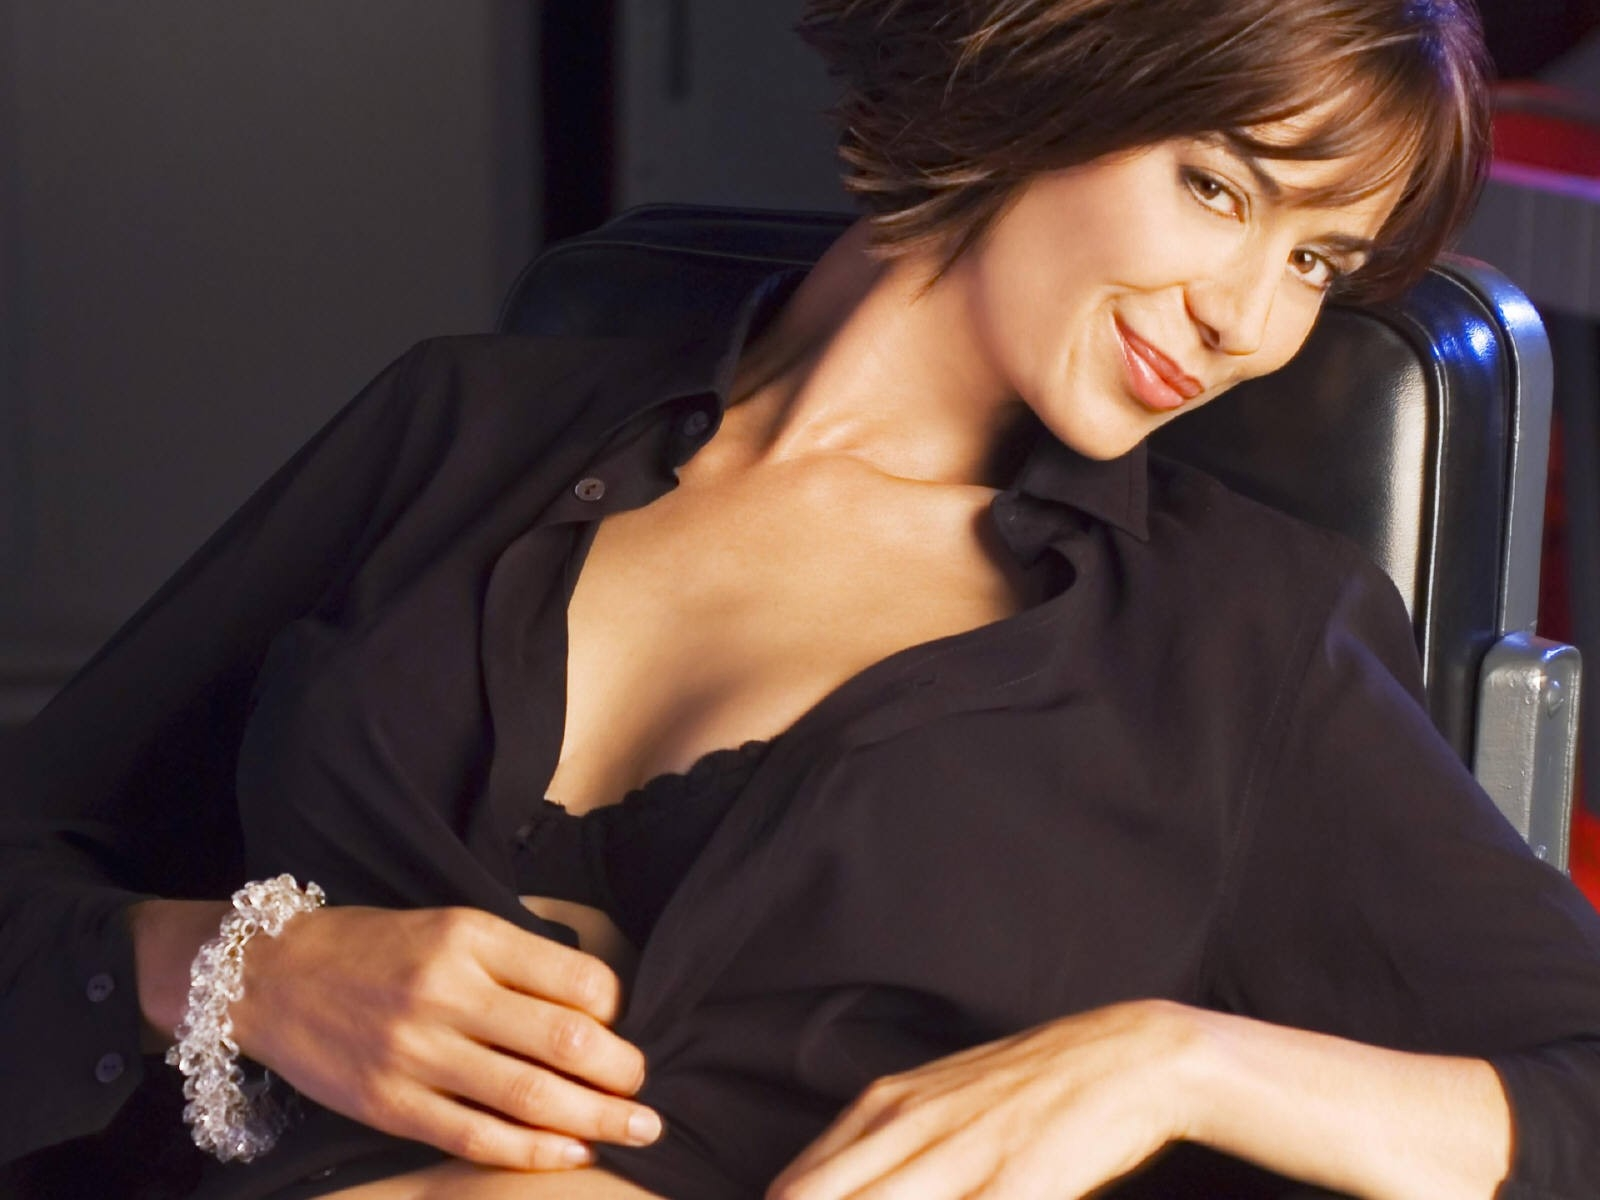 Wallpaper di Catherine Bell vestita di nero